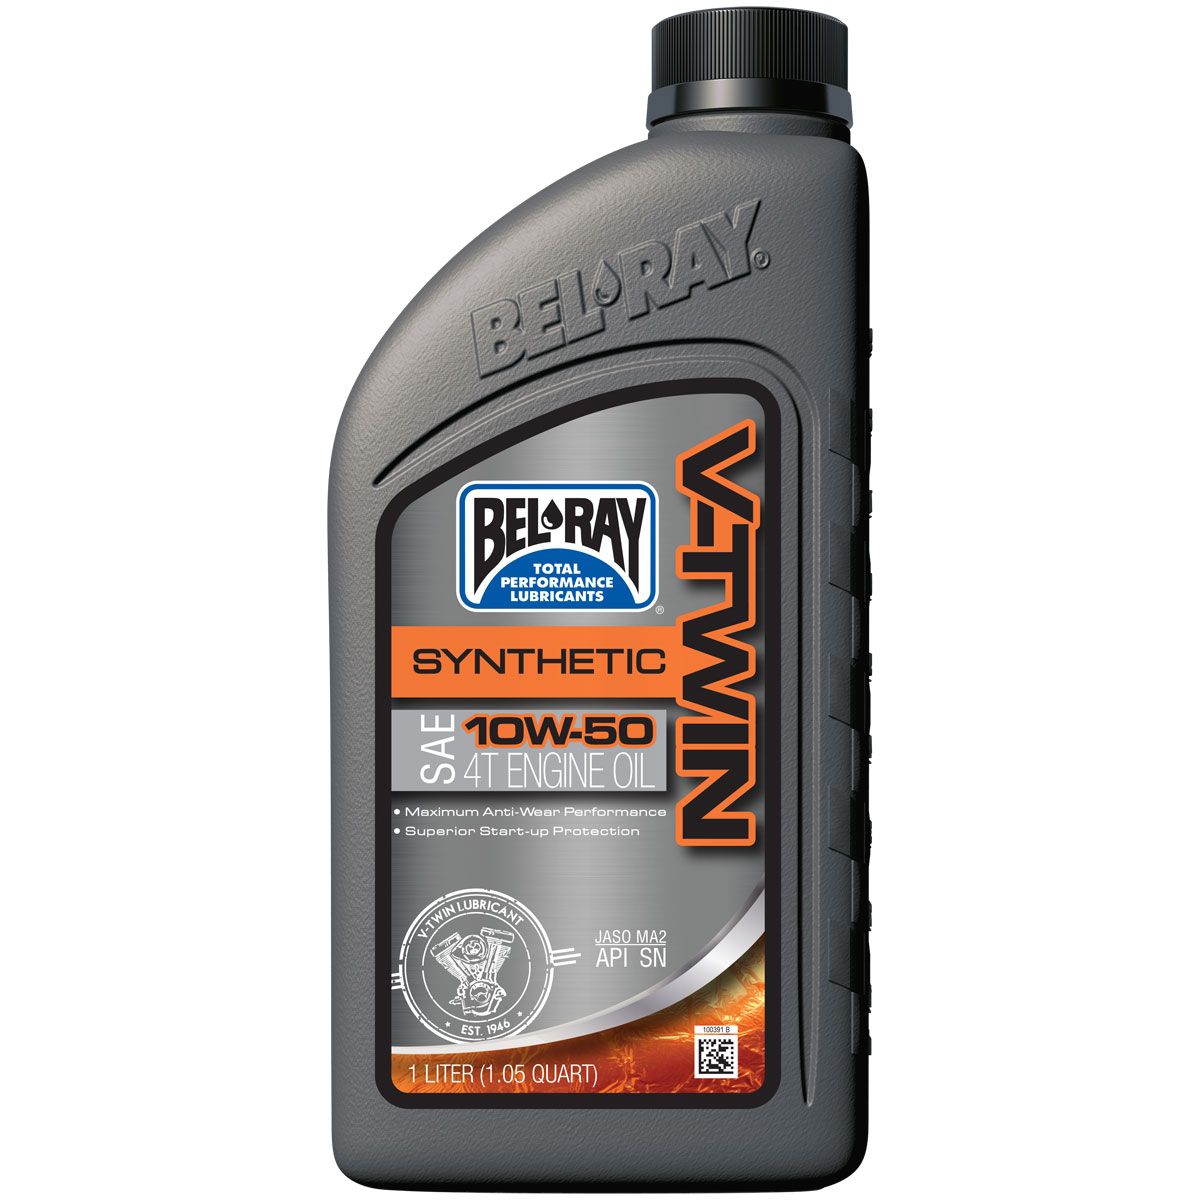 Bel-Ray V-Twin Synthetic 10W50 Engine Oil 1 Liter